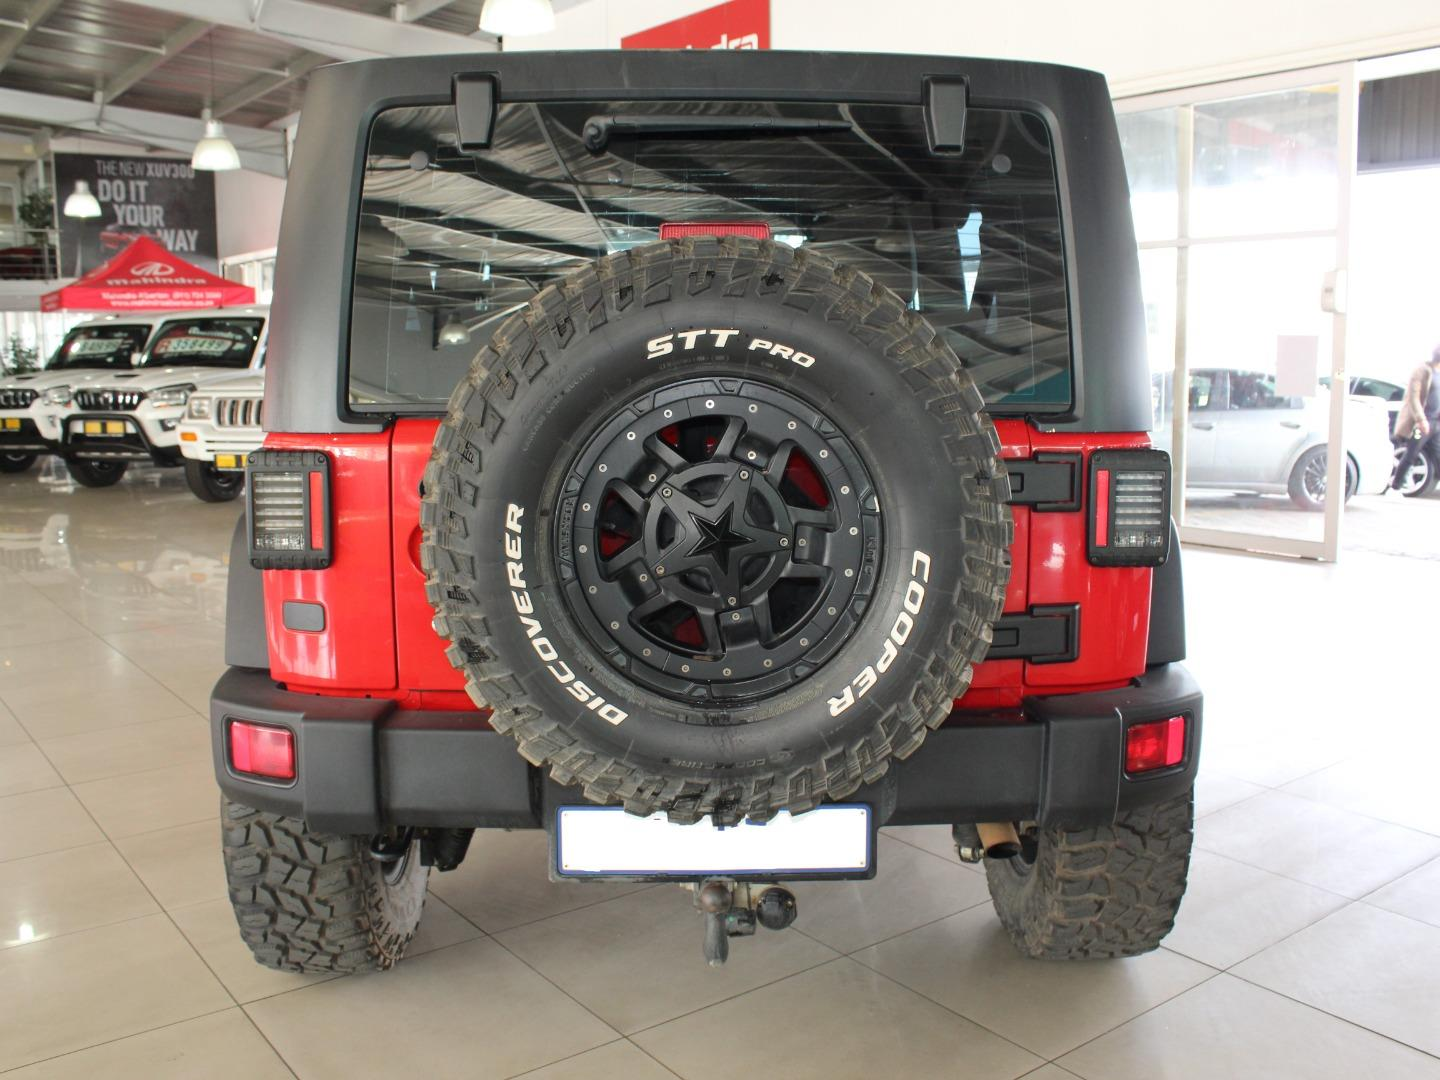 2016 Jeep Wrangler Unlimited 3.6L Rubicon- Picture 7